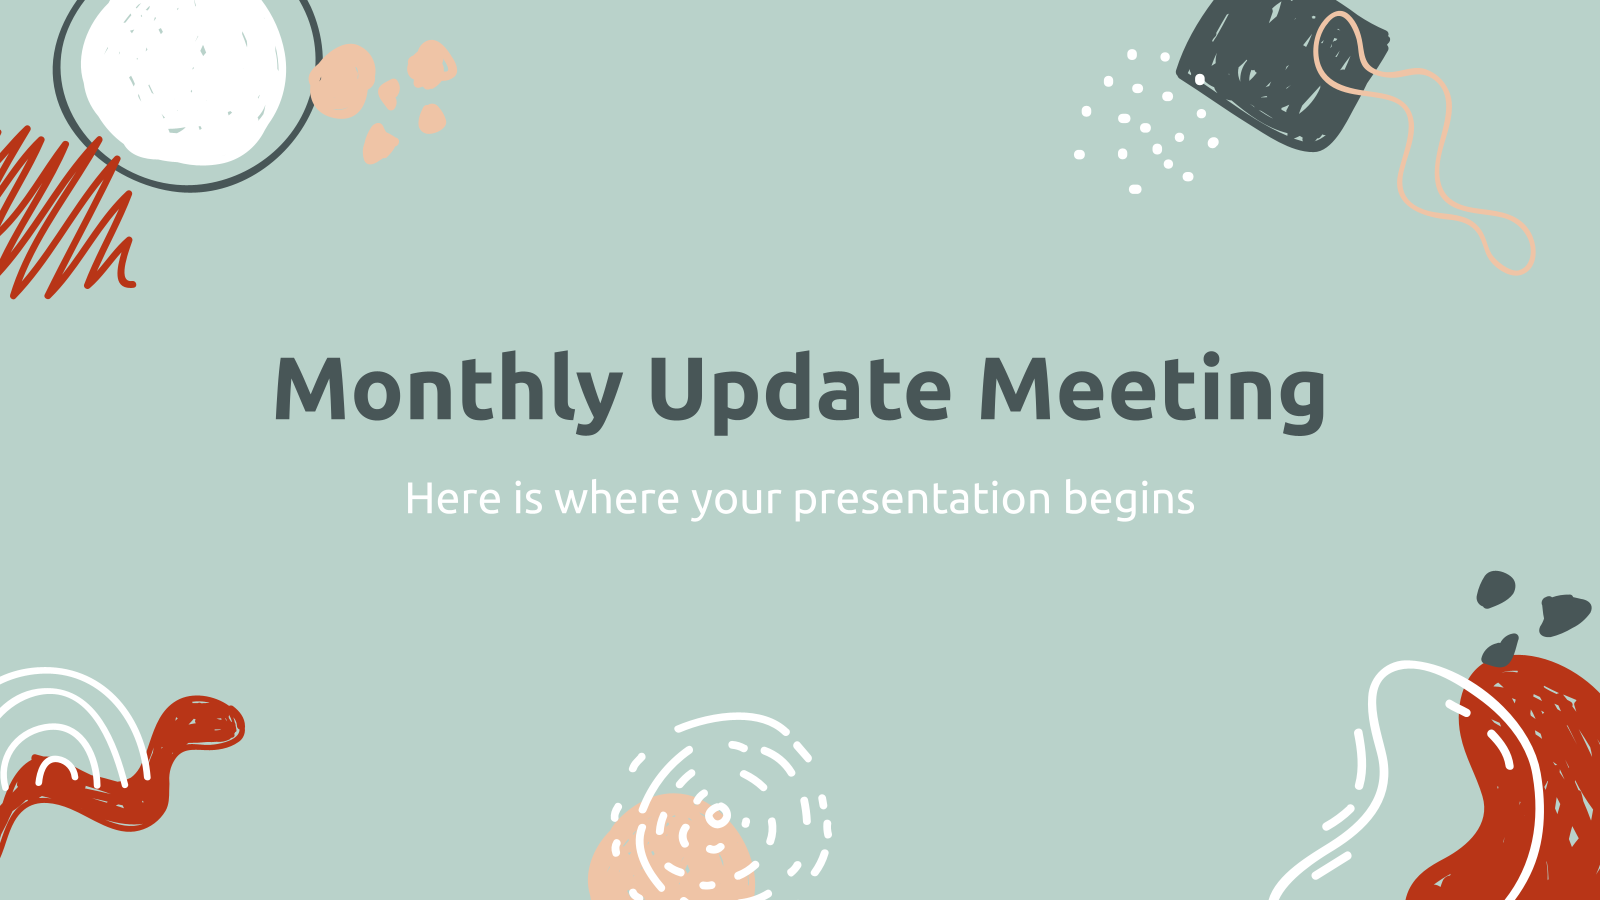 Monthly Update Meeting presentation template